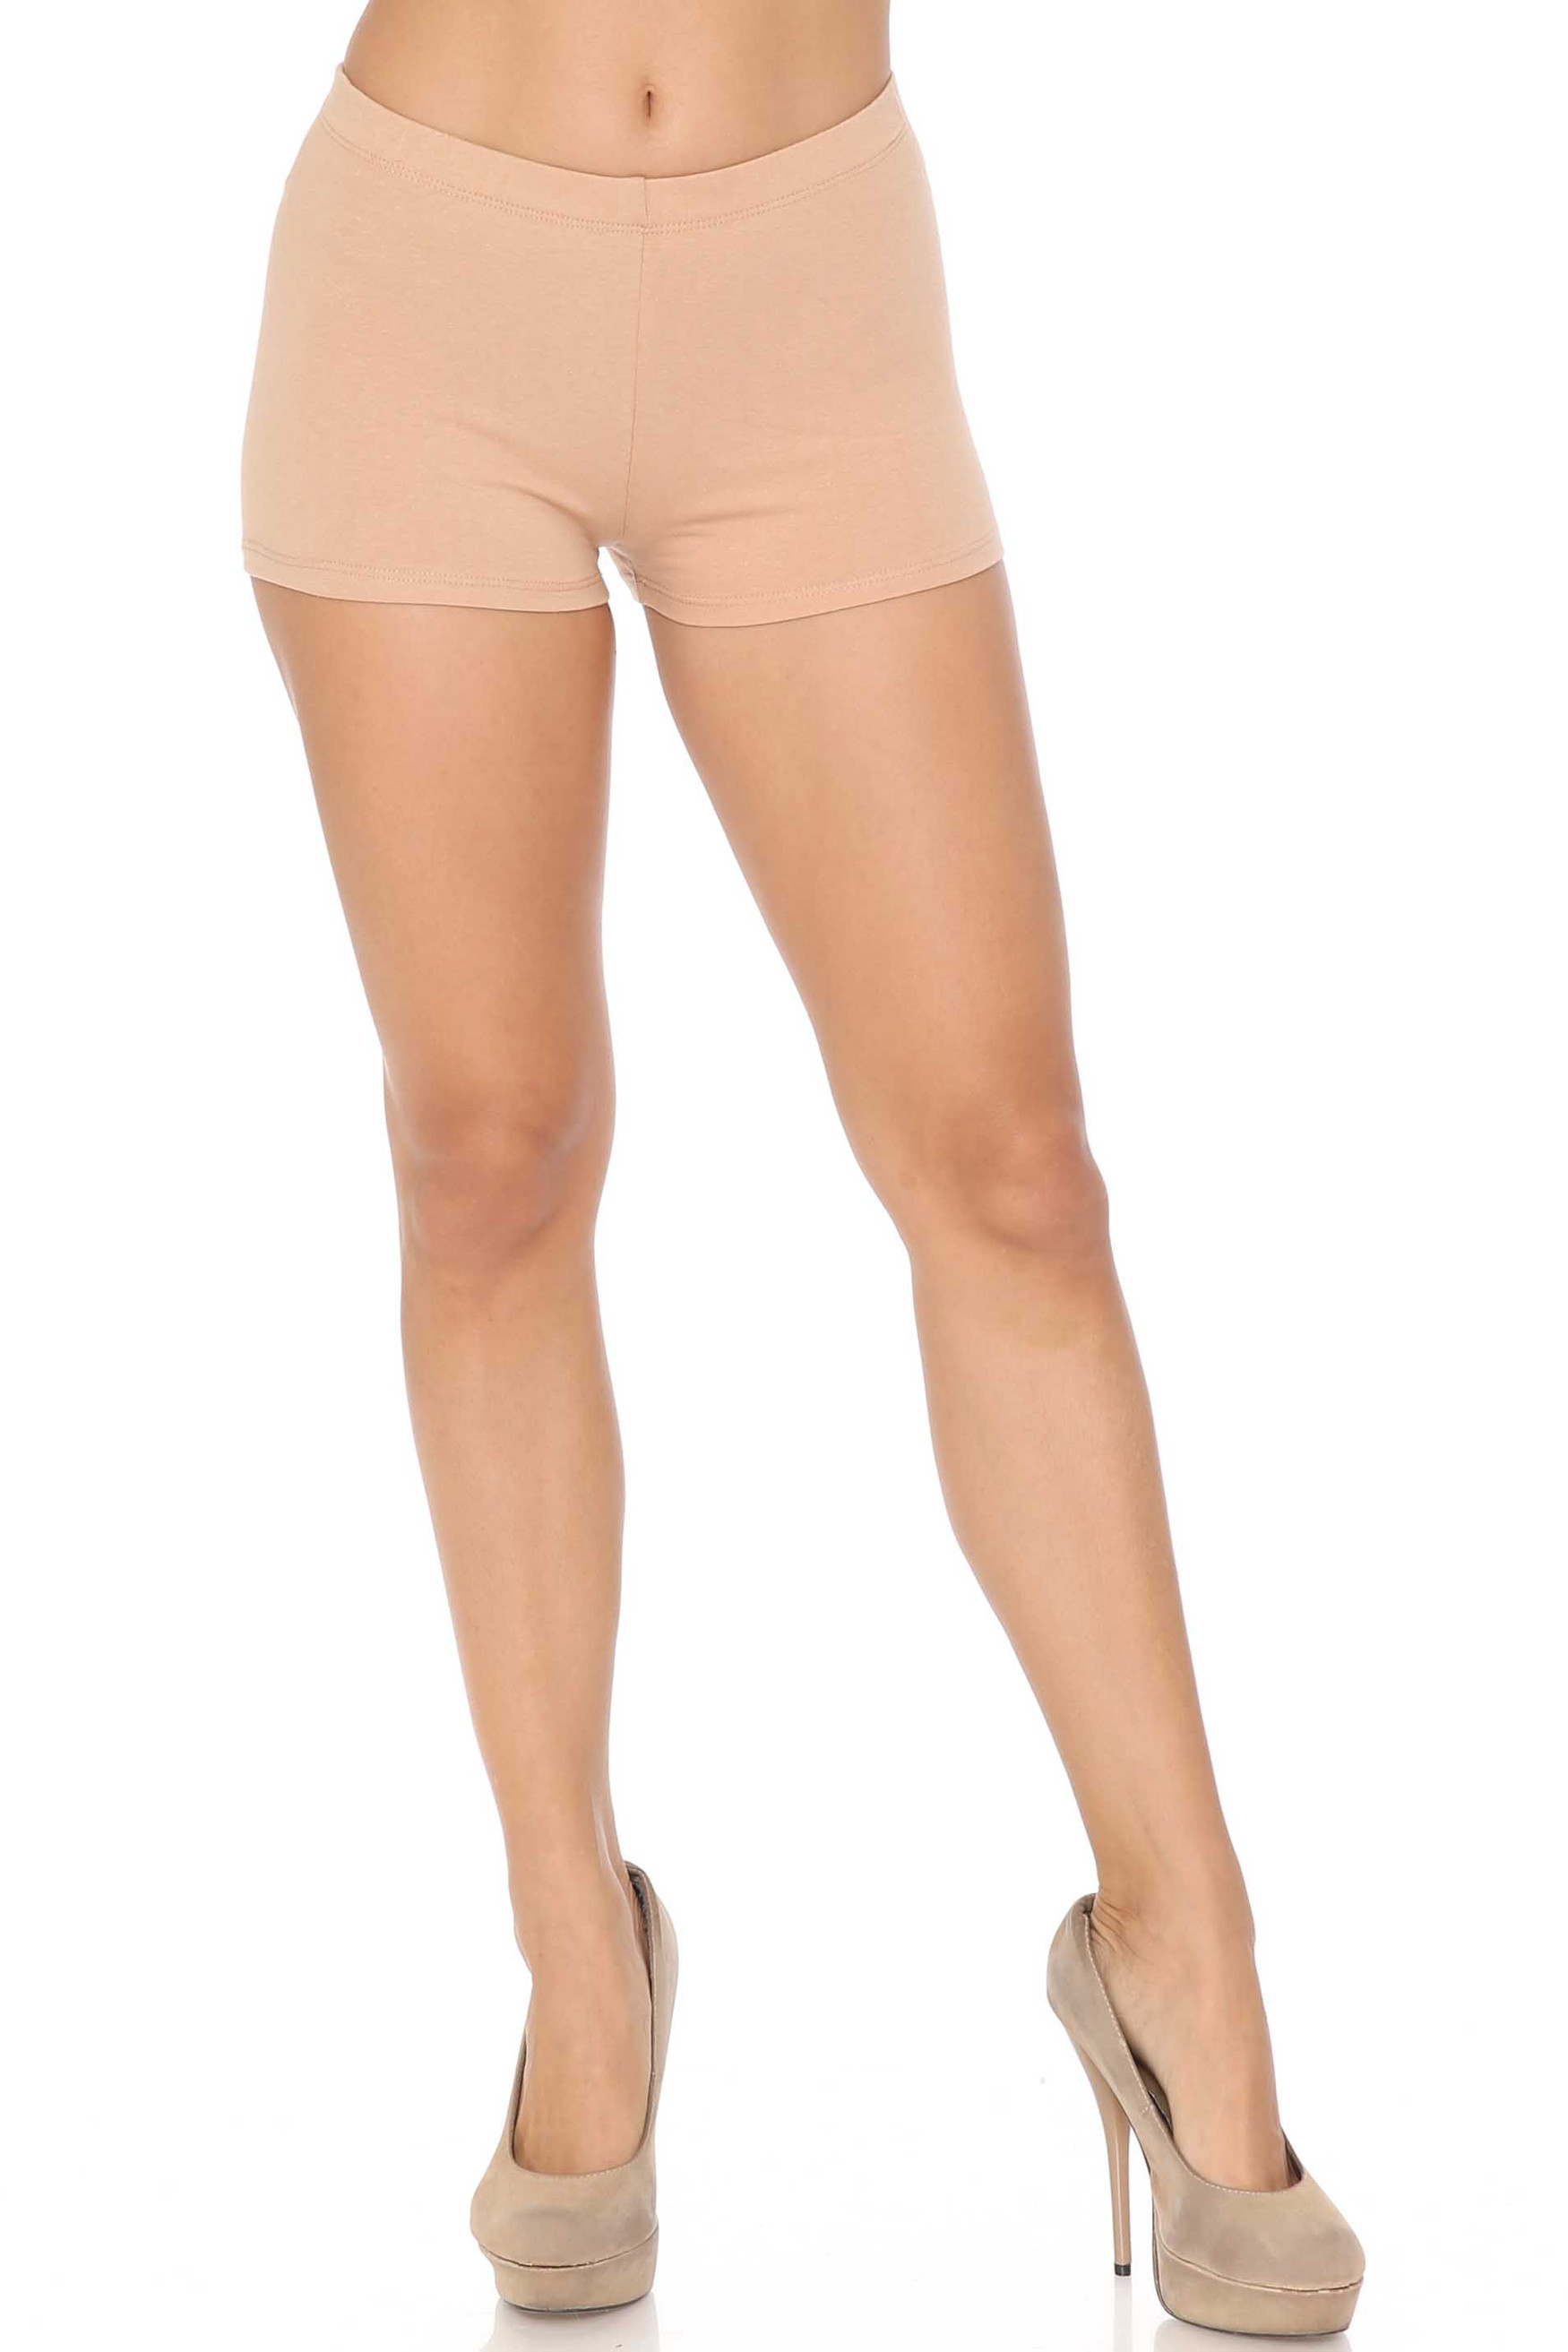 Front view of Beige USA Cotton Boy Shorts